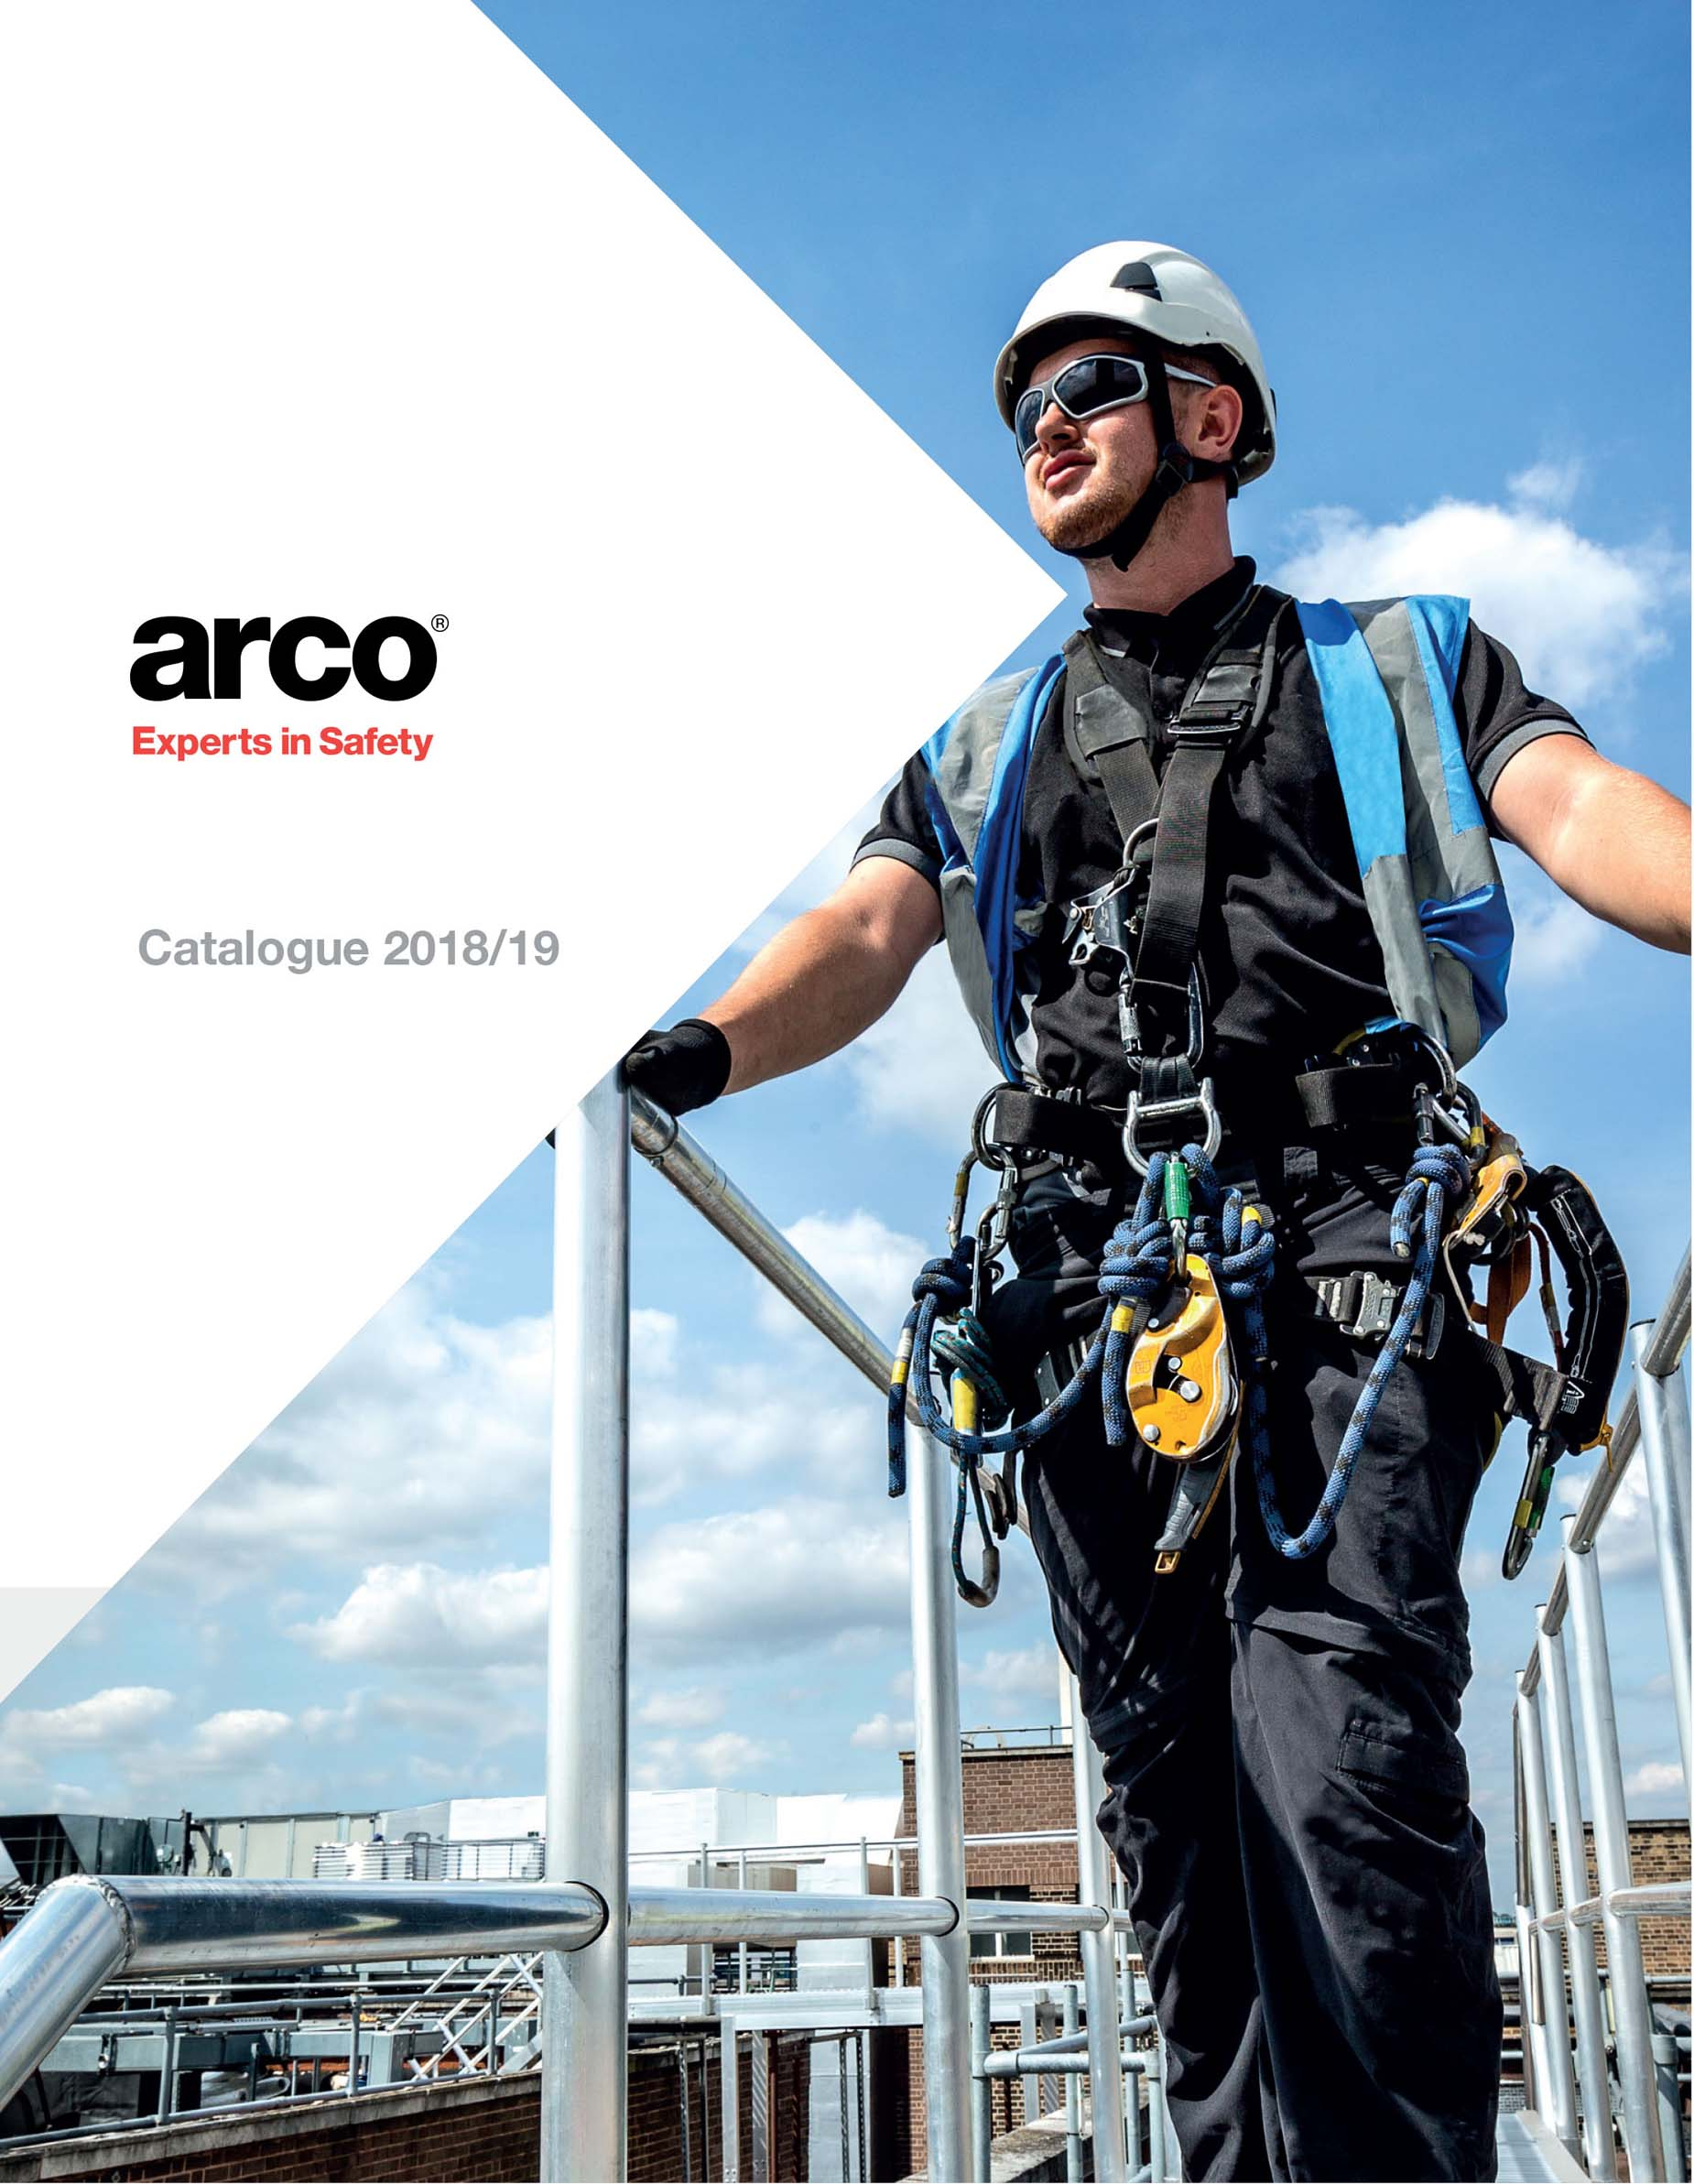 Arco_Catalogue_Cover_2018.jpg